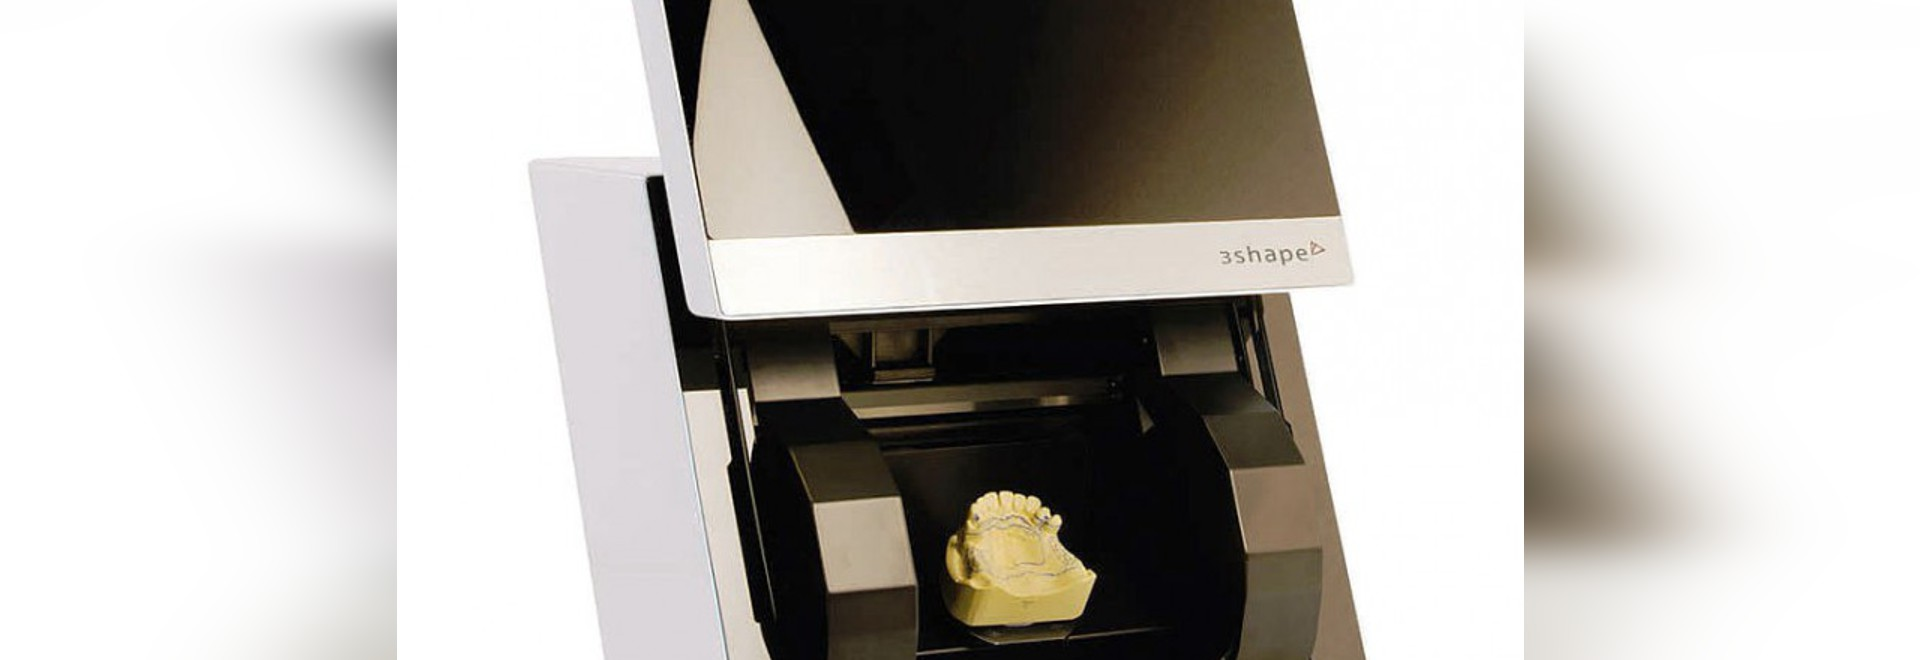 D900 Scanner By 3shape - 10 Independence Boulevard Suite 150